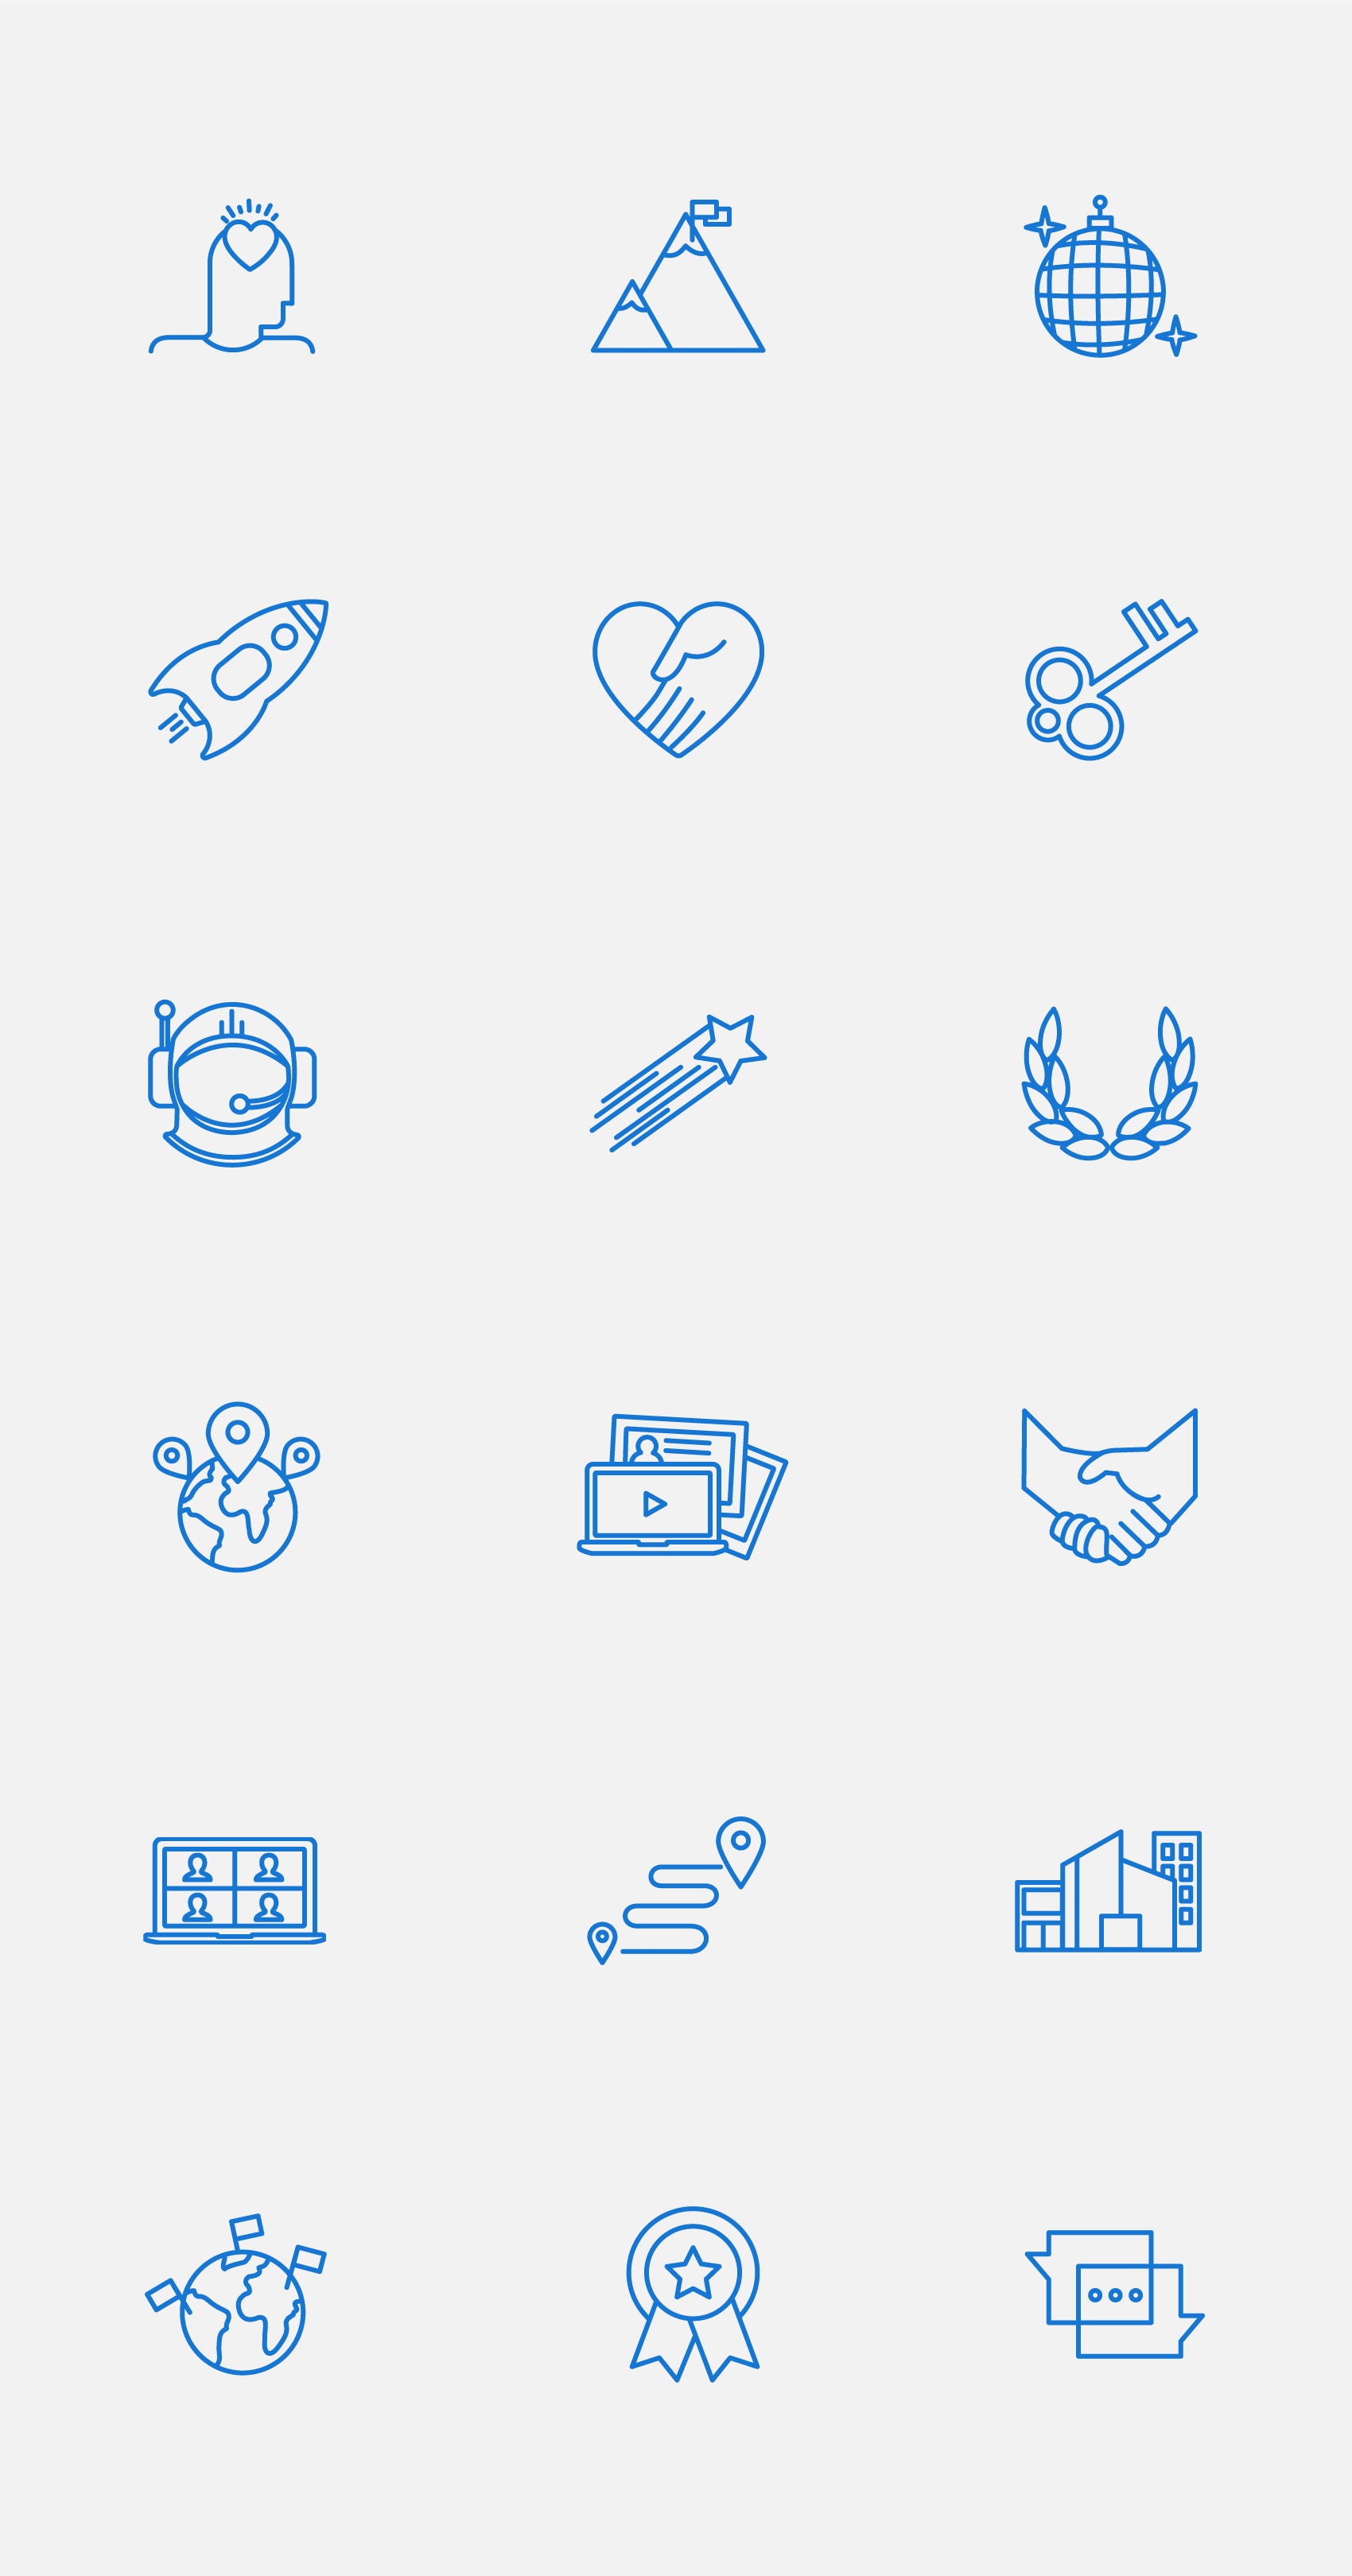 Full Icon Pack for 2U